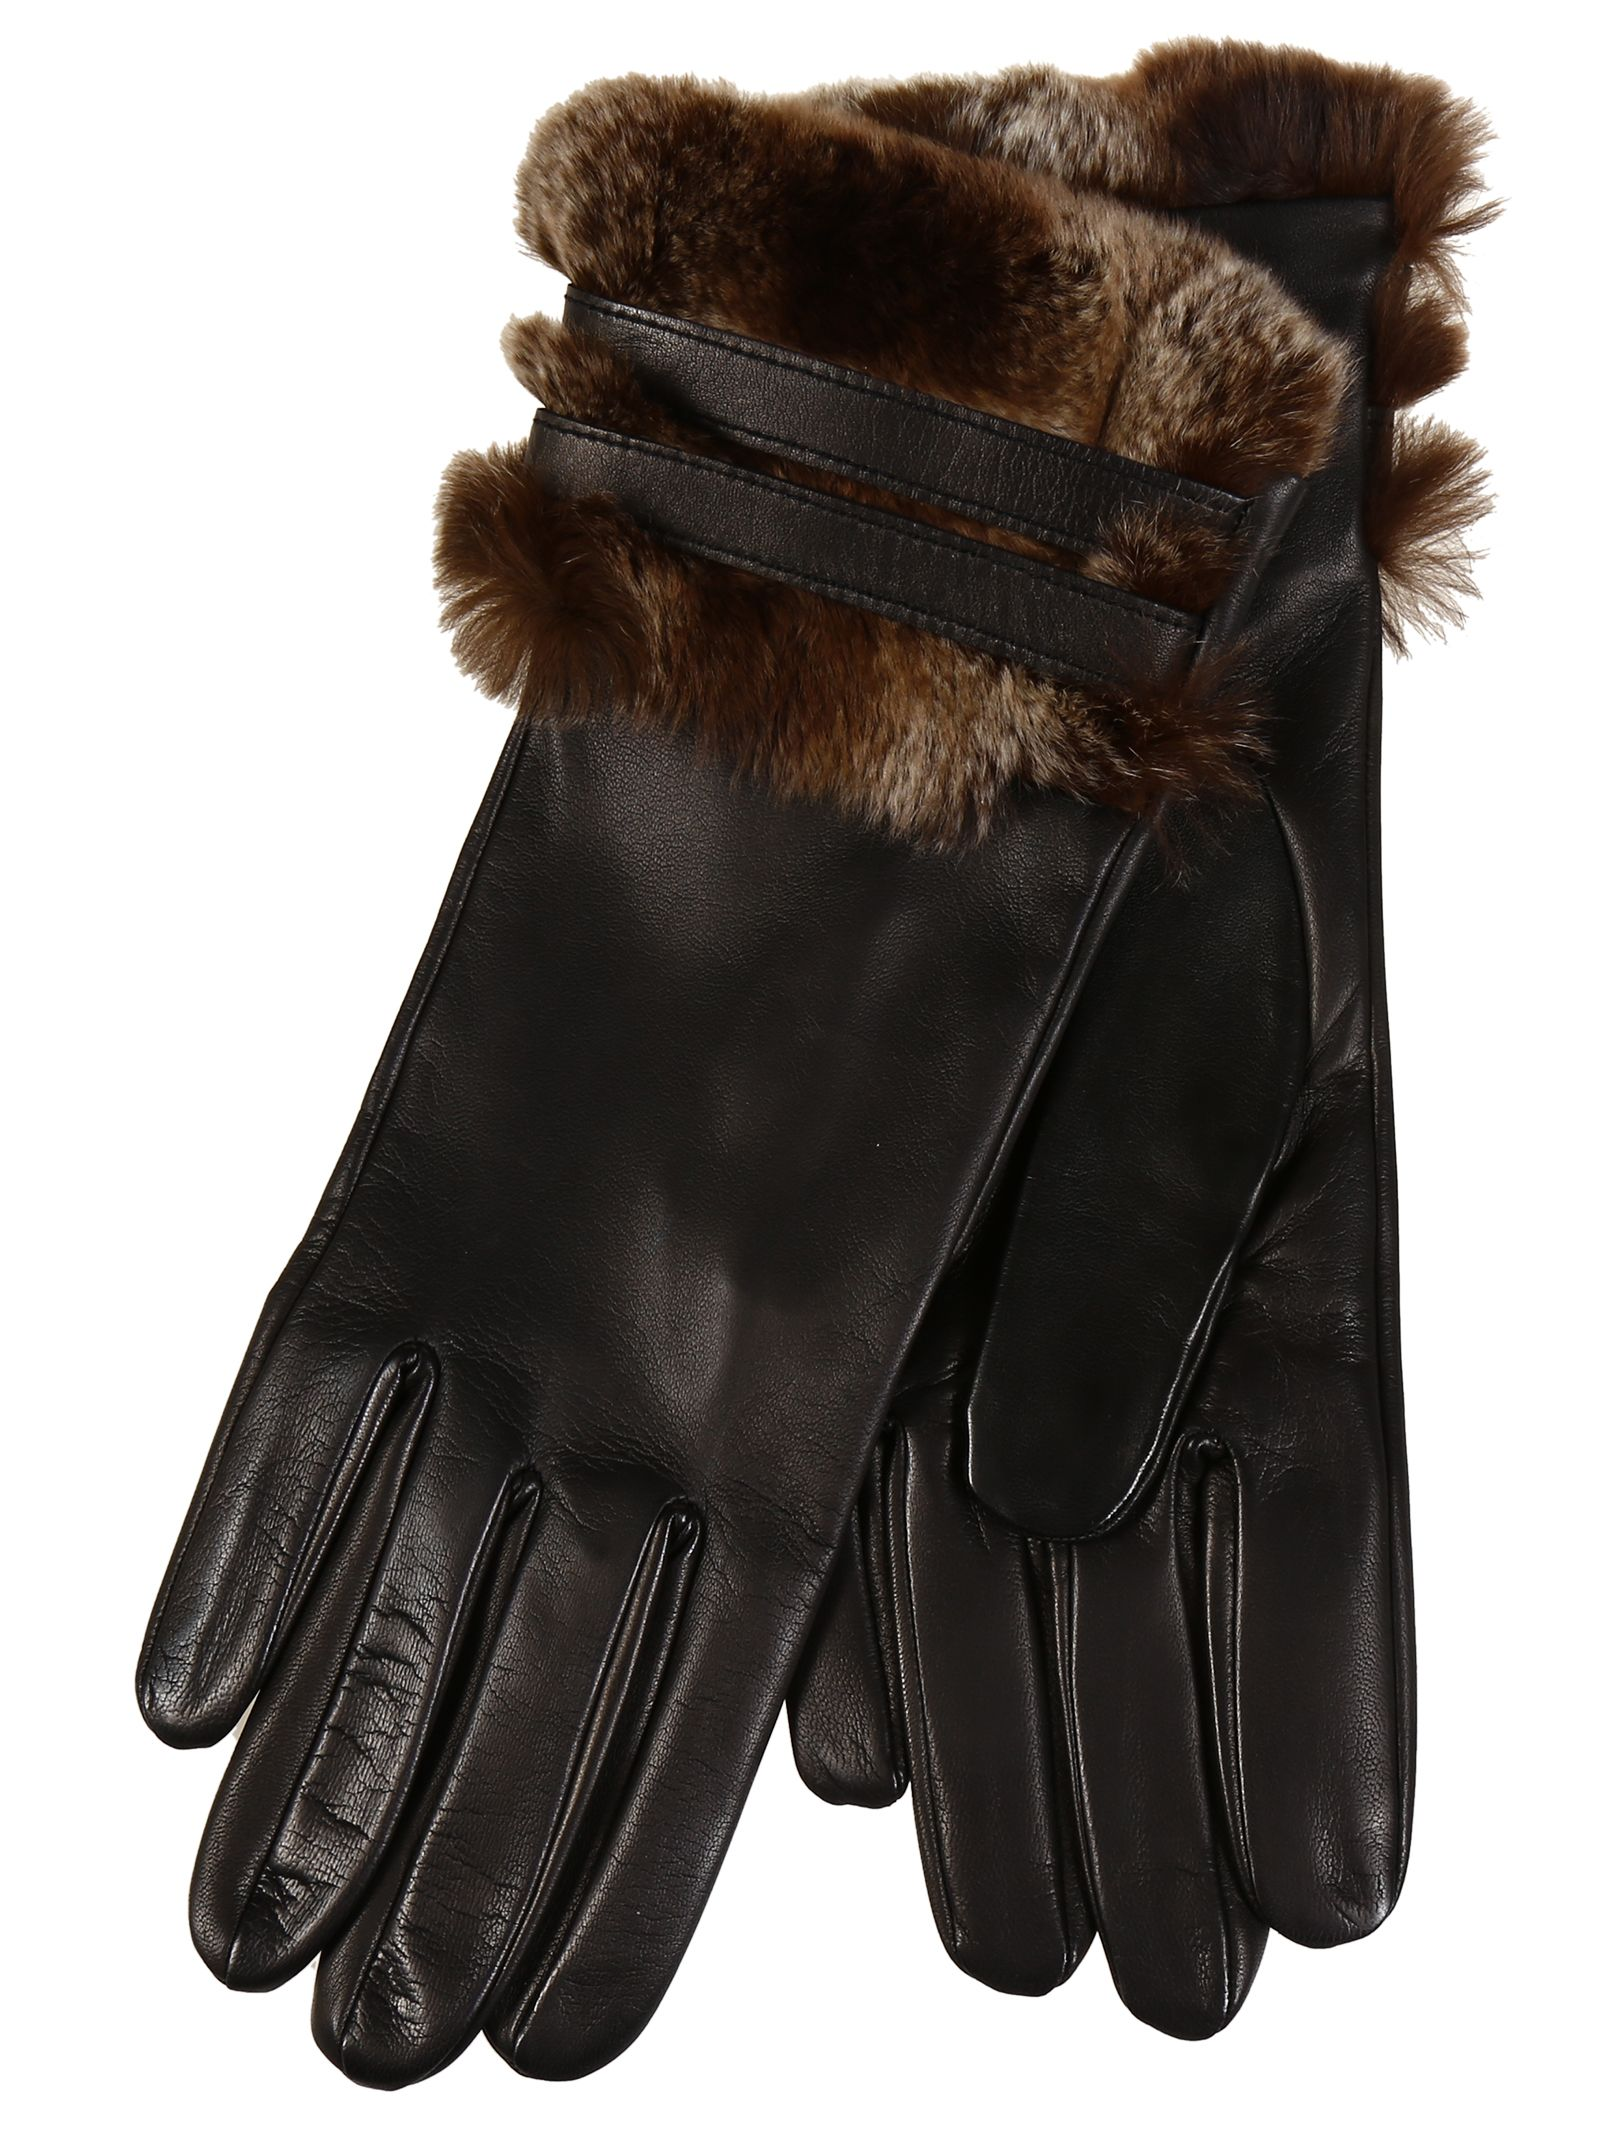 Restelli Nappa Leather Gloves With Fur Cuffs And Leather Belts